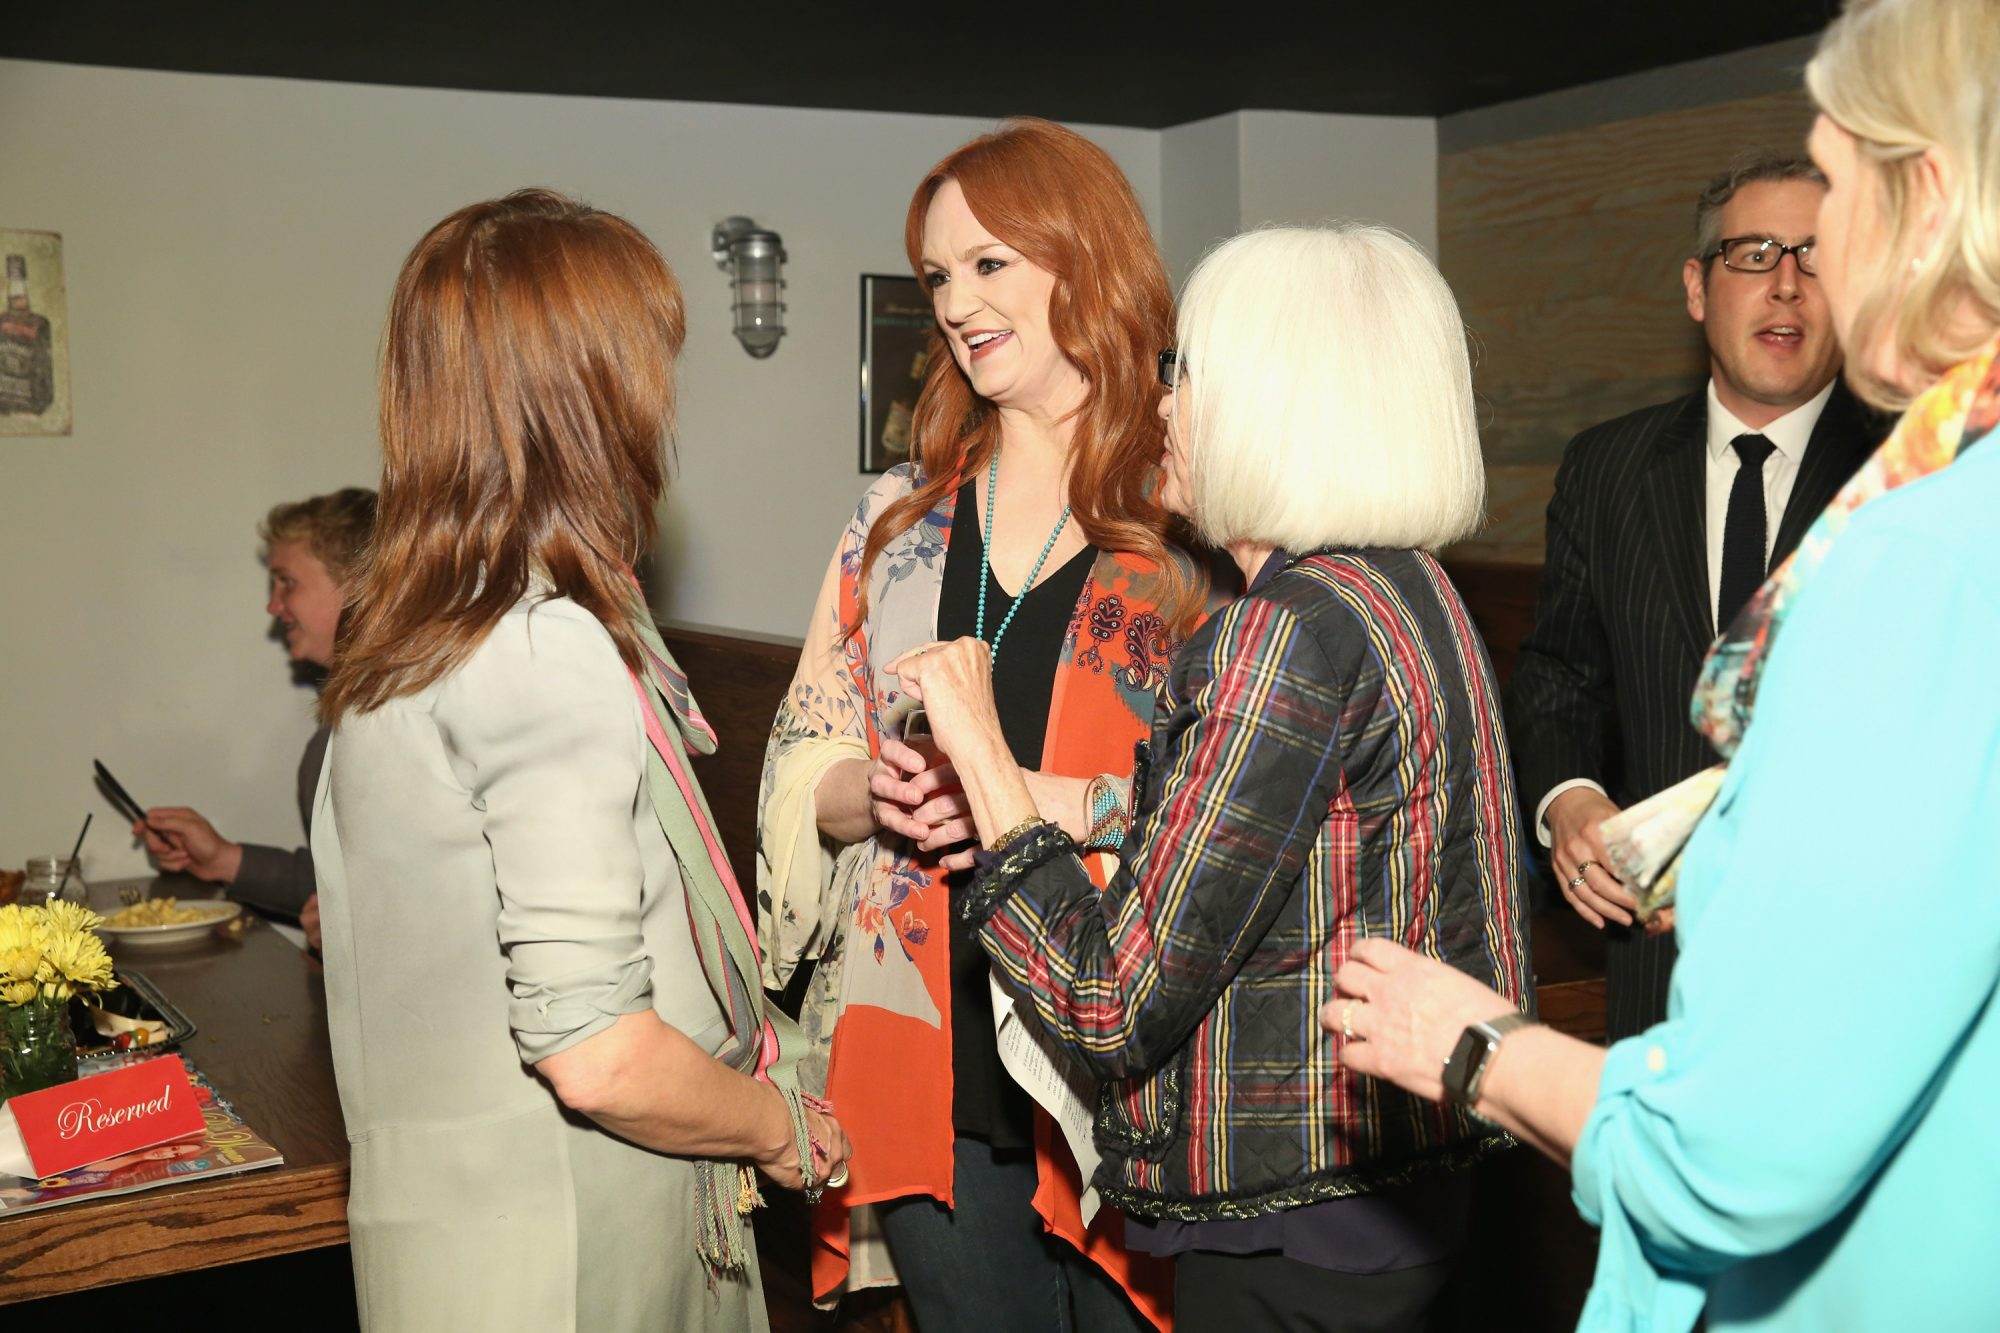 Ree Drummond Chatting